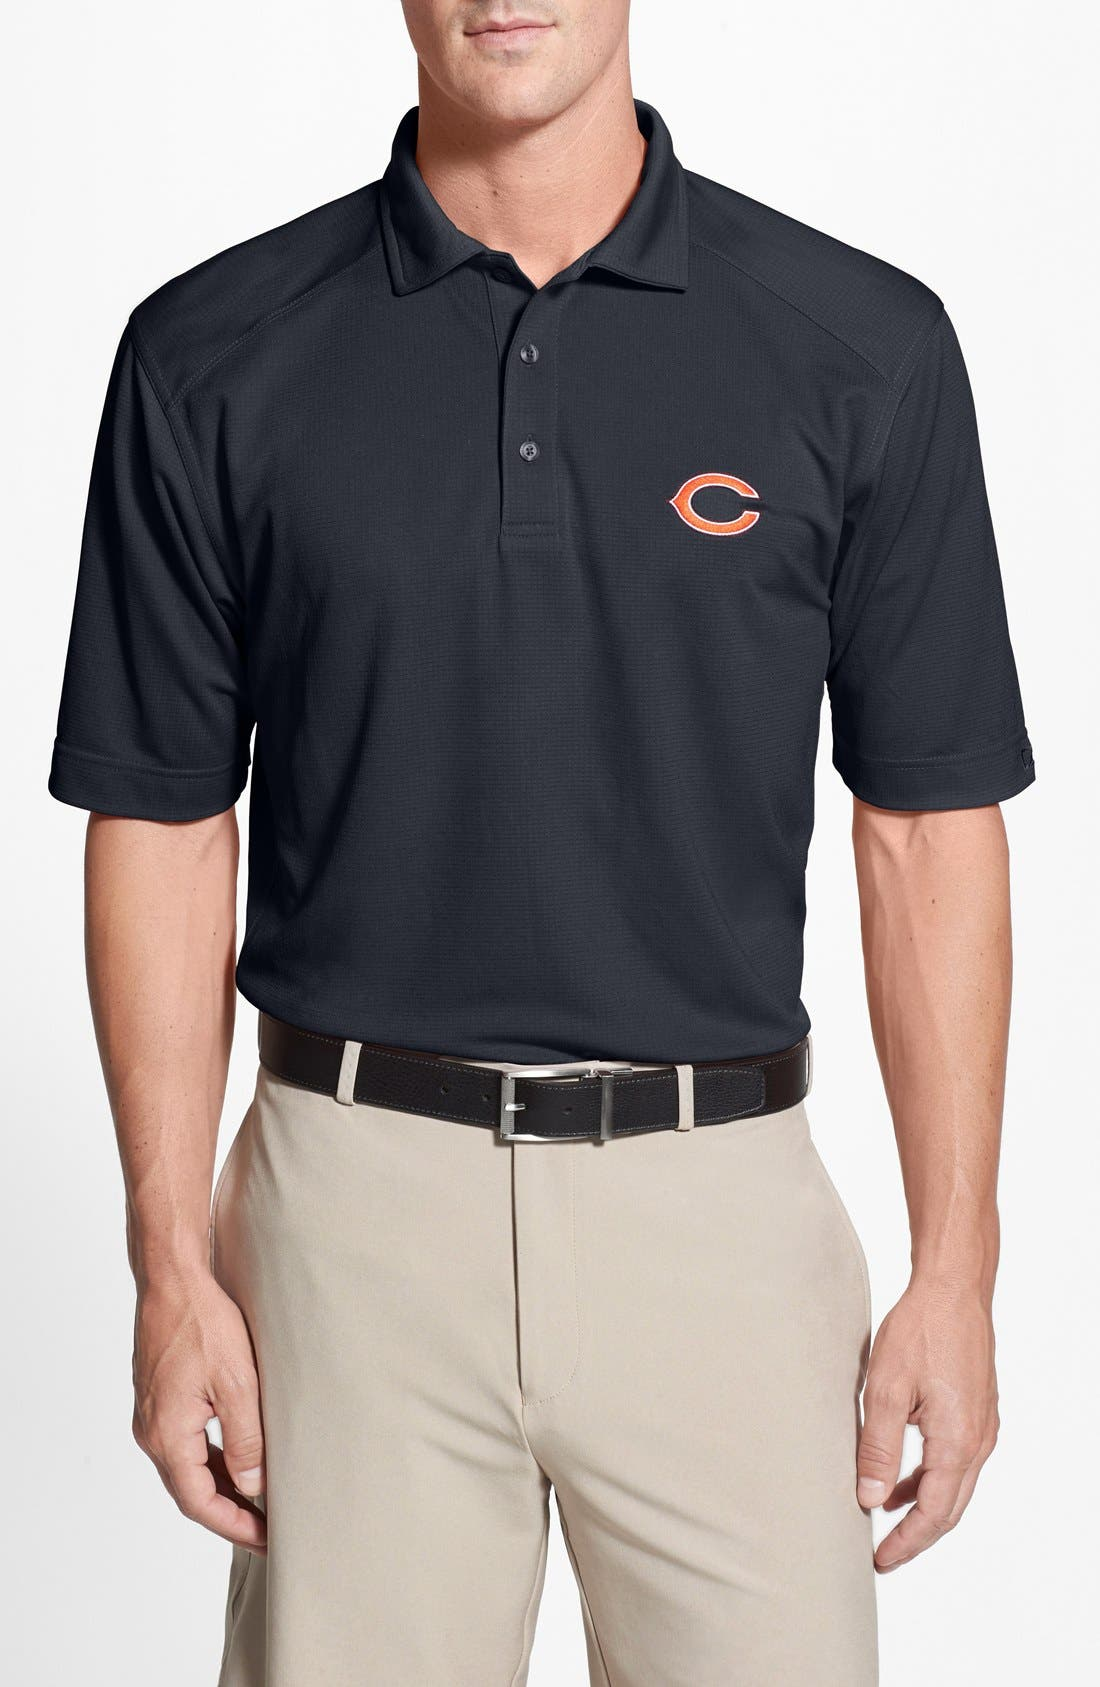 Chicago Bears - Genre DryTec Moisture Wicking Polo,                         Main,                         color, Navy Blue